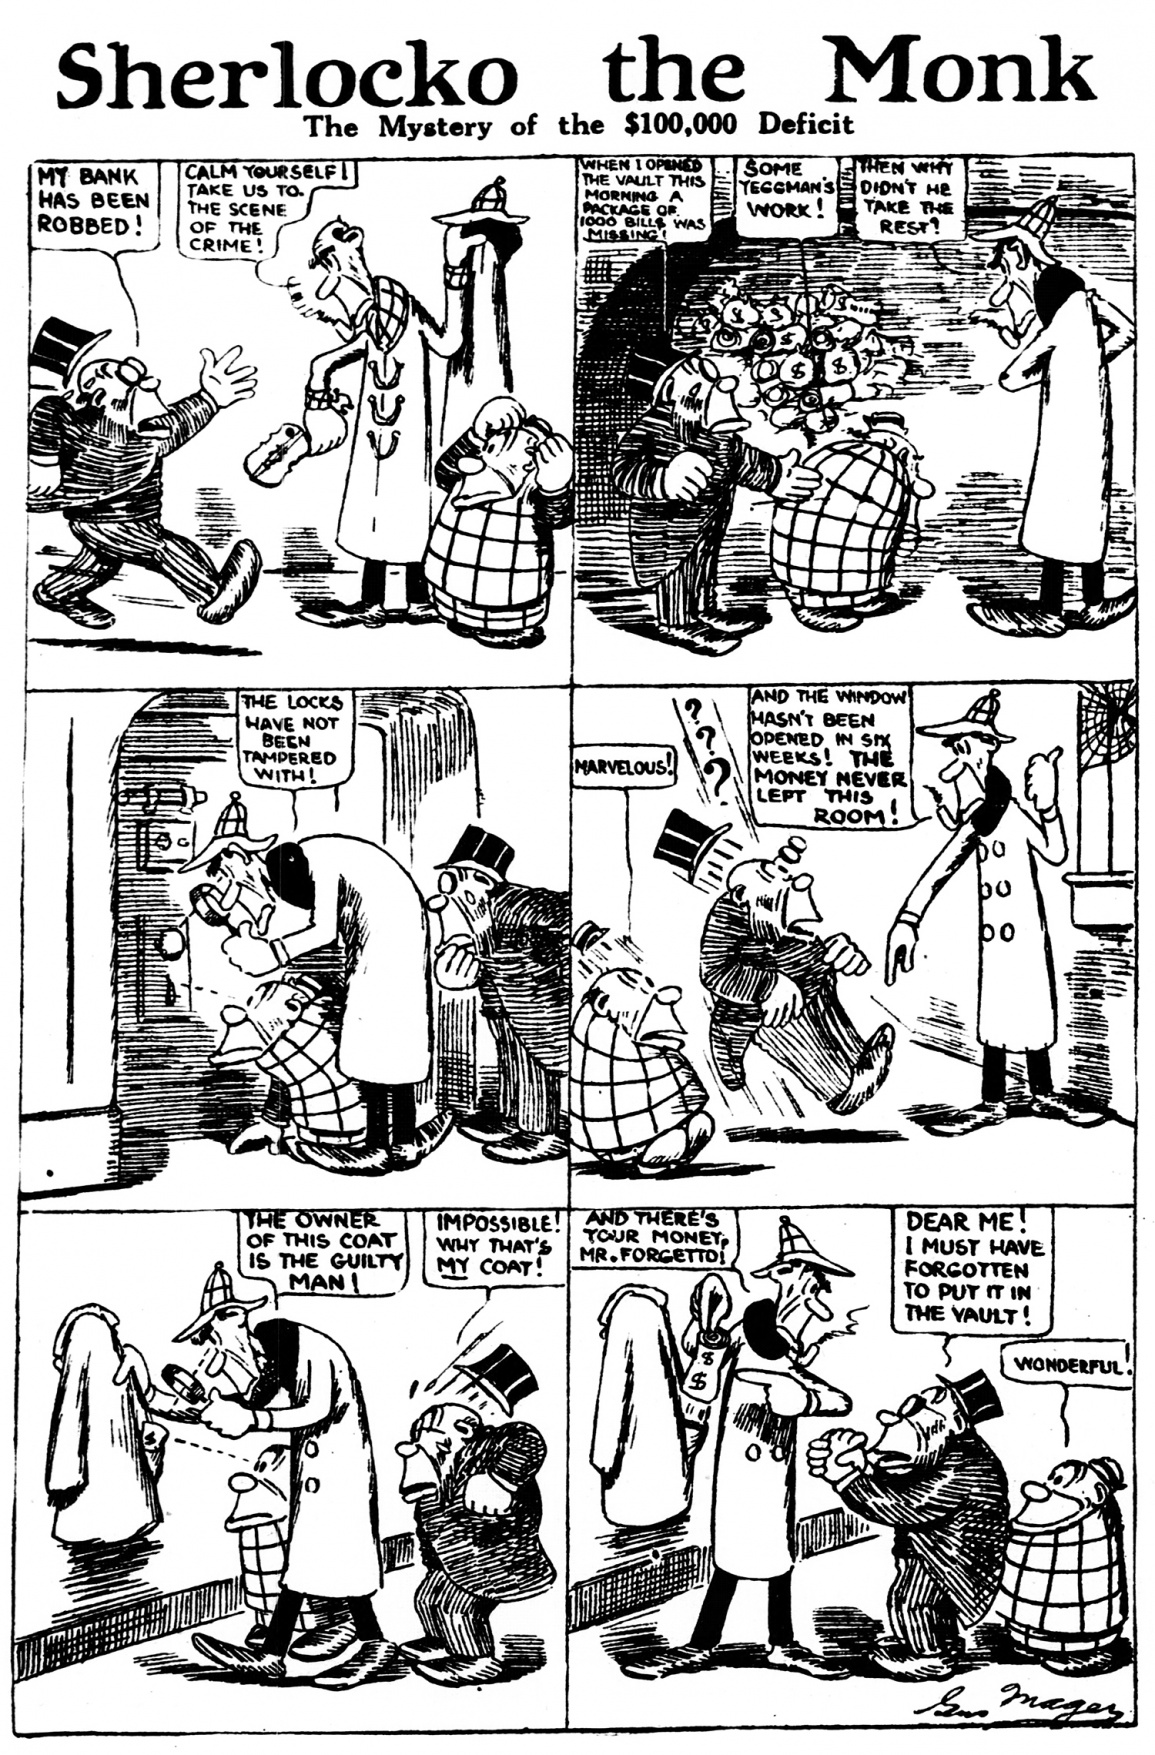 Sherlocko the Monk: The Mystery of the $100,000 Deficit (February 3, 1911)